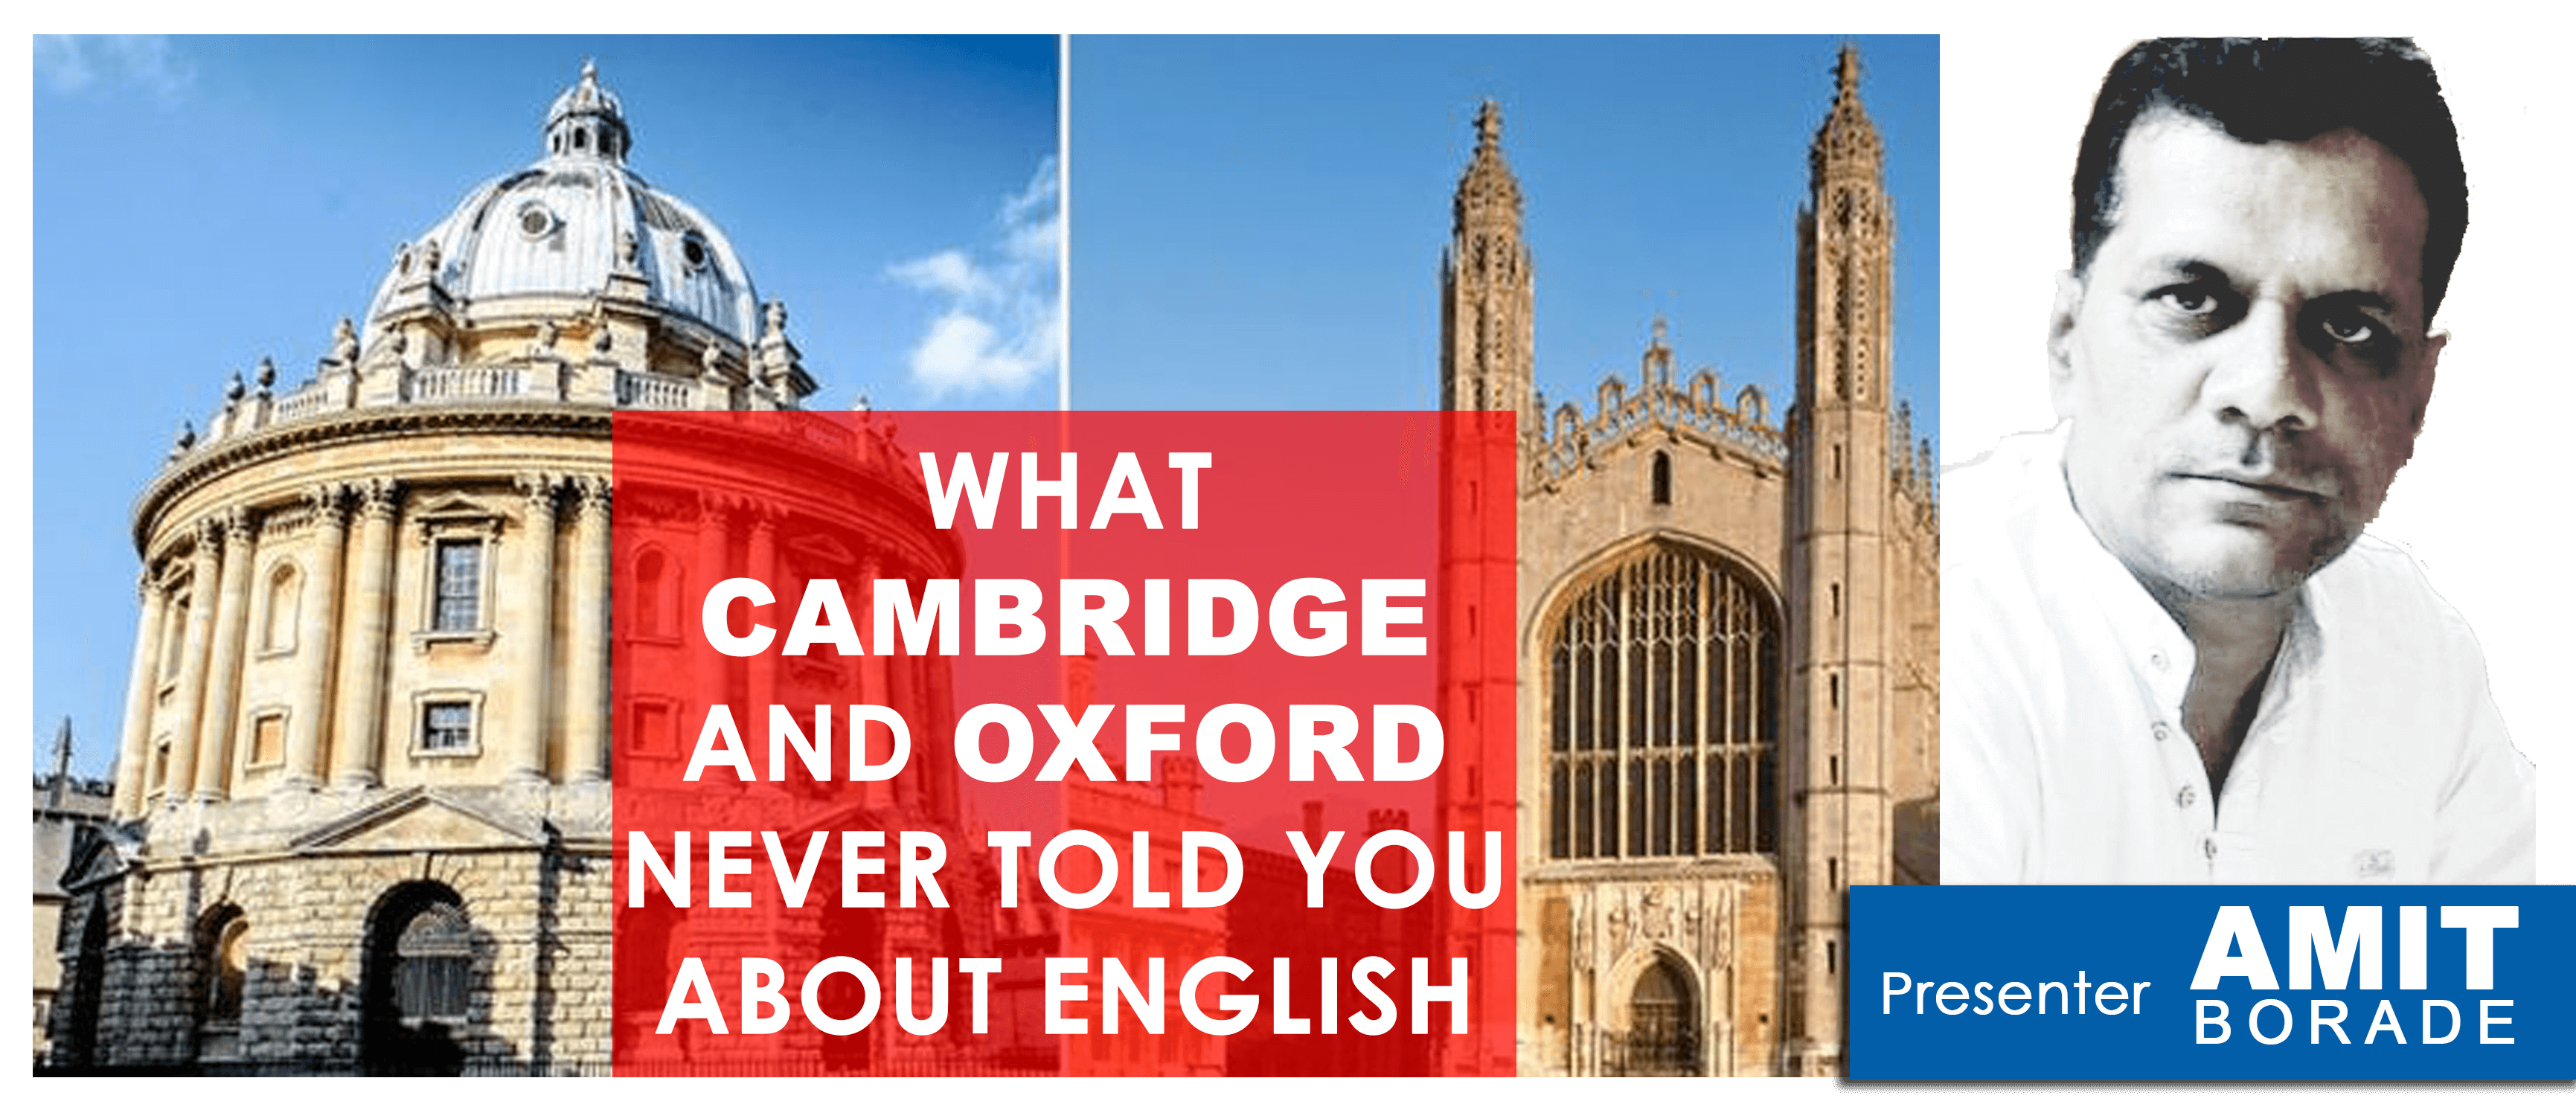 What Cambridge and Oxford never told you about English